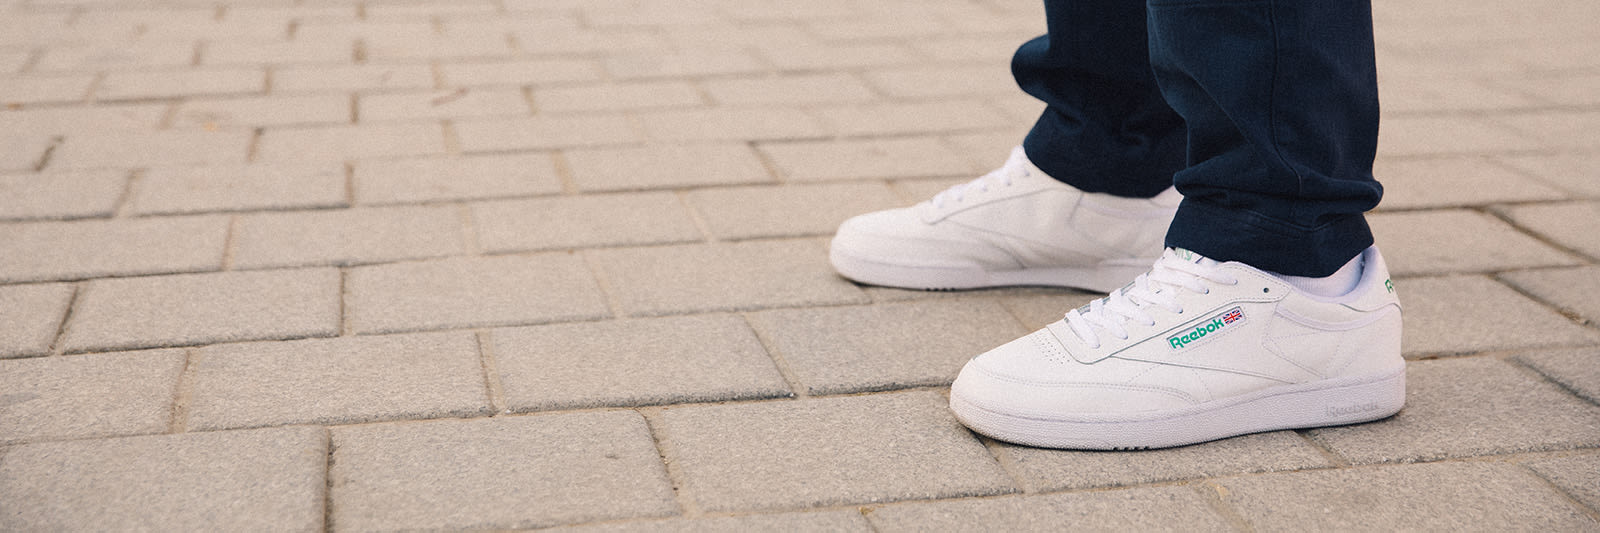 These Are The Best White Sneakers For Men In 2020